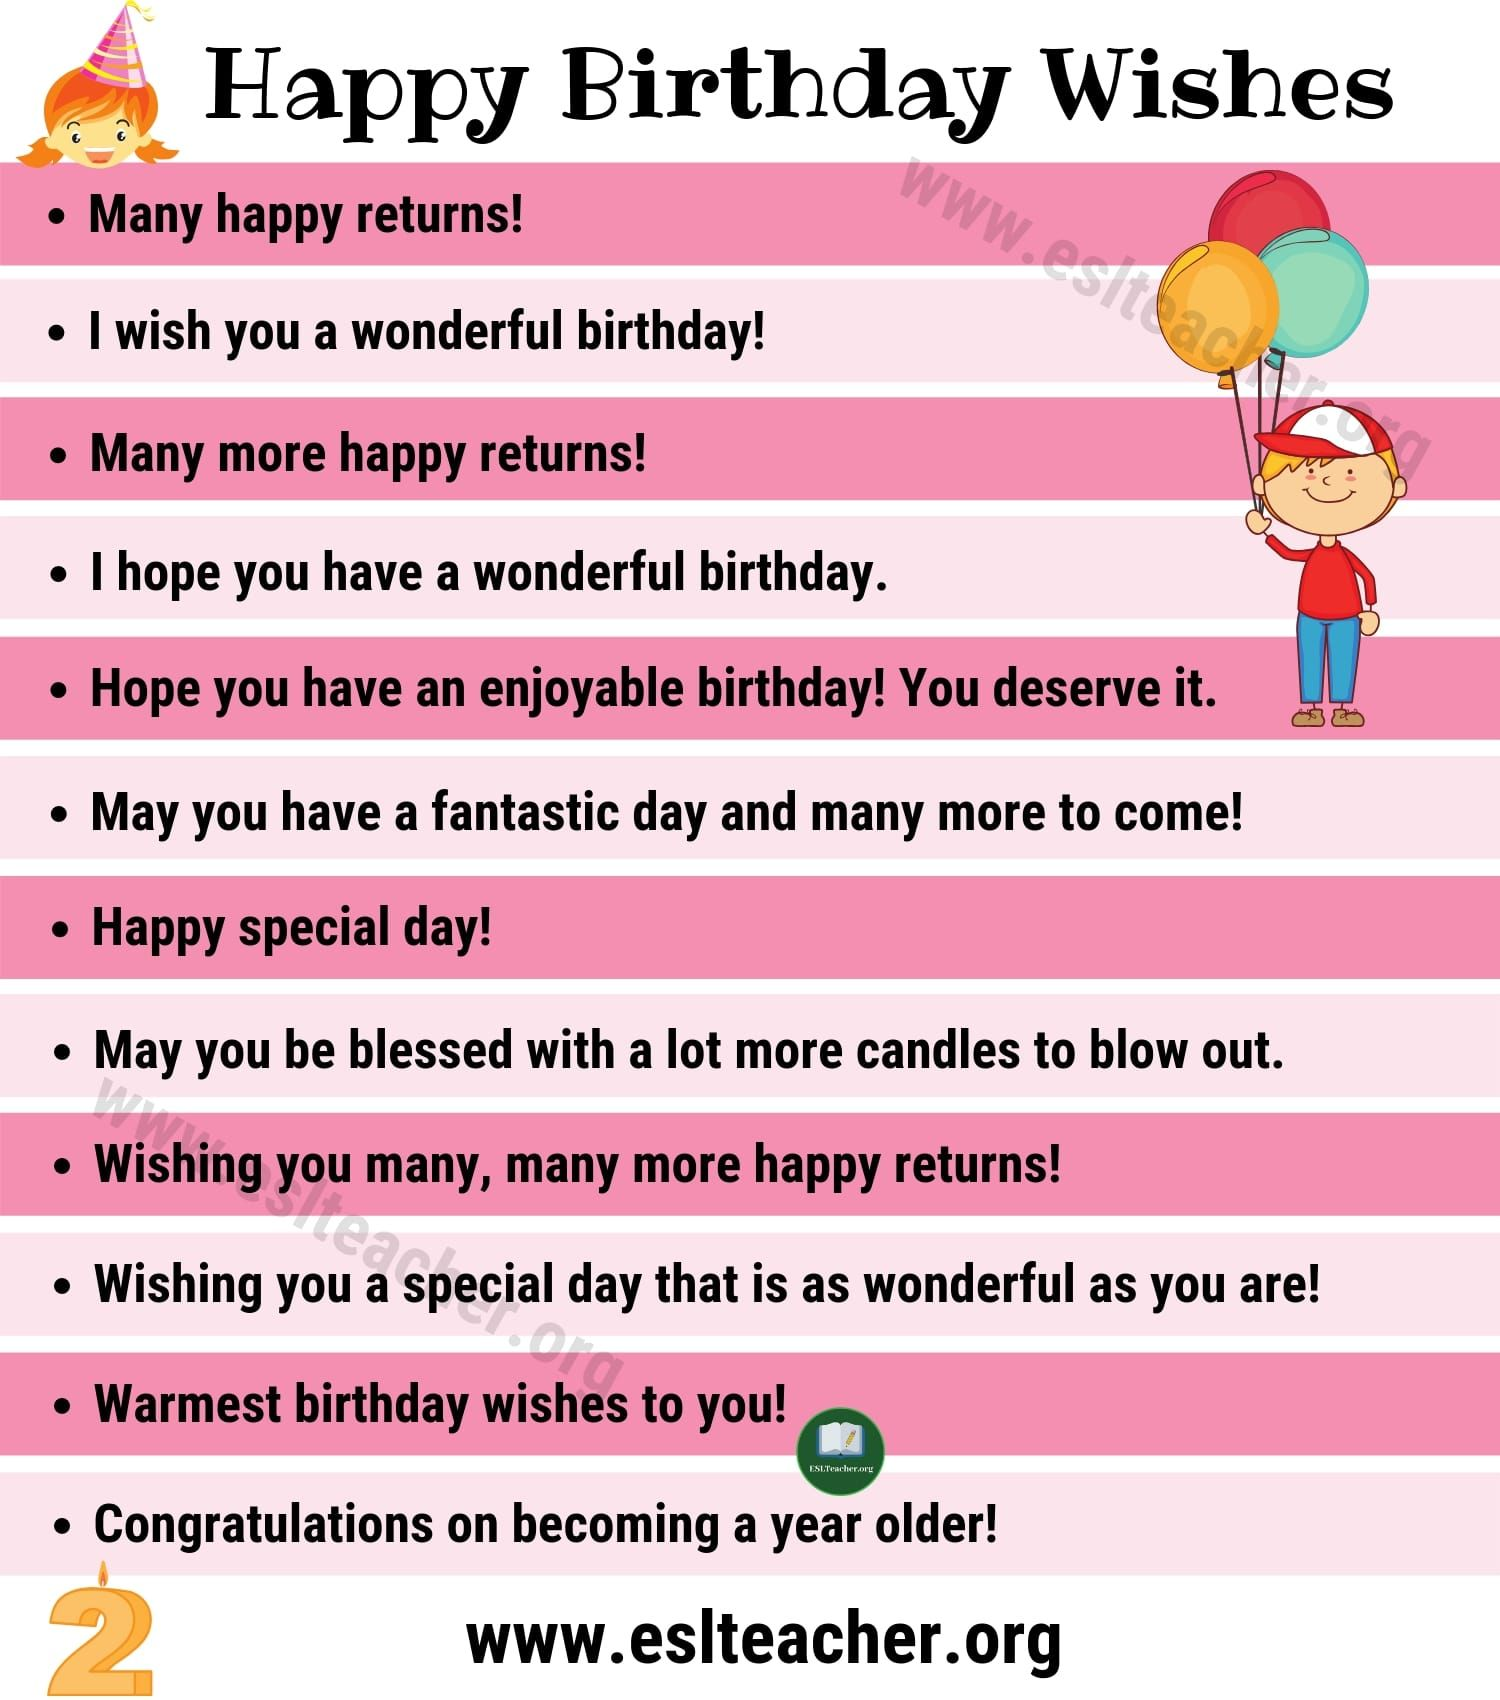 Birthday Wishes 35 Funny Ways To Say Happy Birthday In English Esl Teac Birthday Wishes For Teacher Happy Birthday Wishes Quotes Happy Birthday Text Message